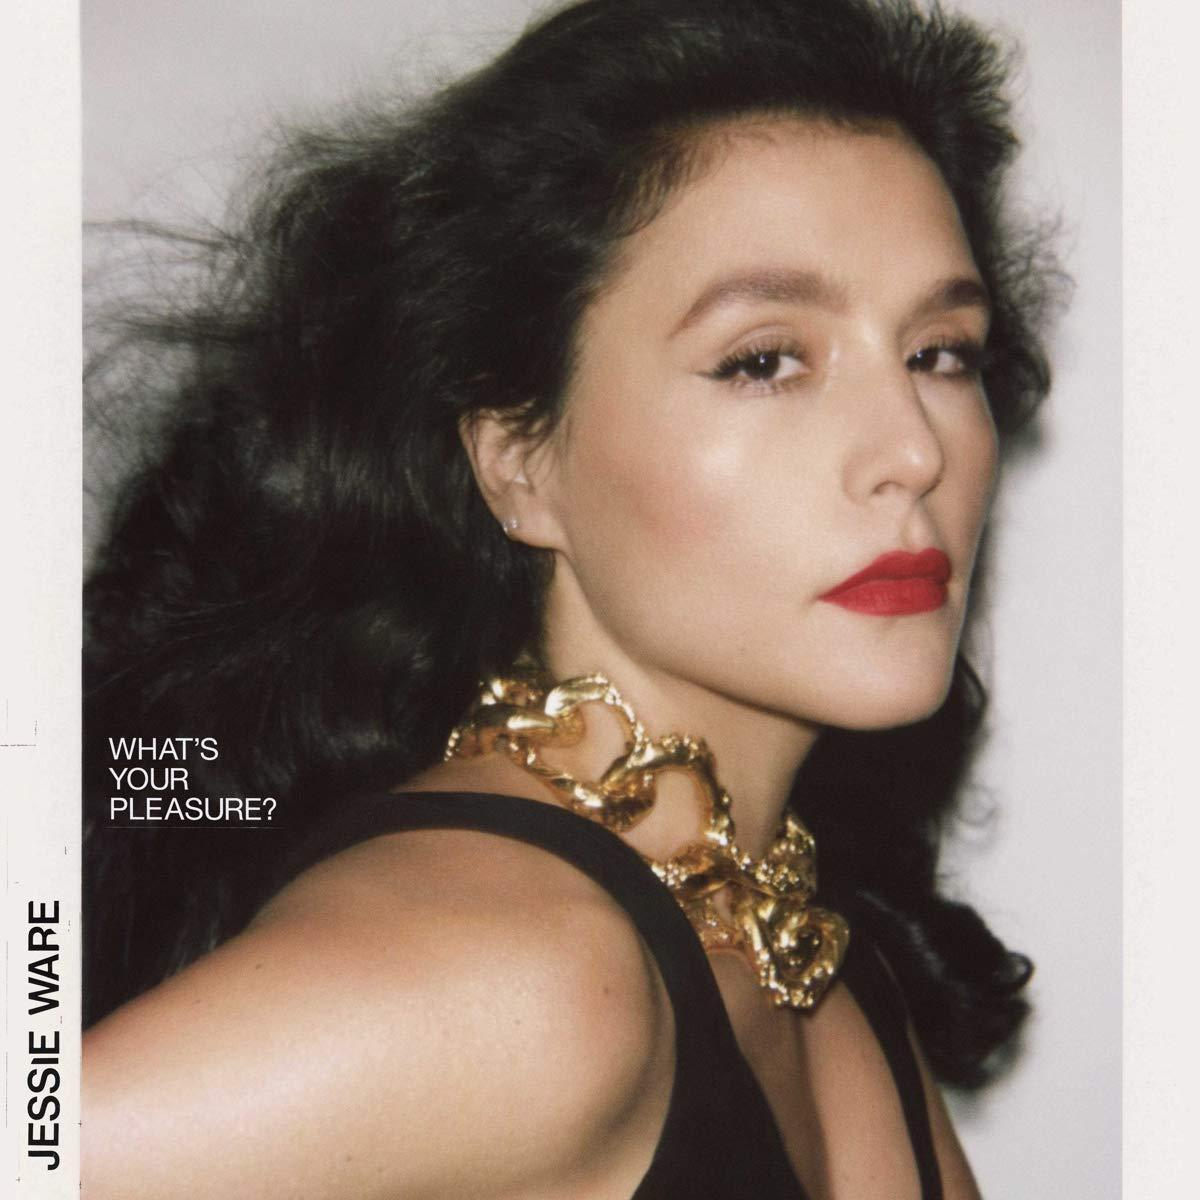 Jessie Ware - What's Your Pleasure [LP] - Urban Vinyl | Records, Headphones, and more.